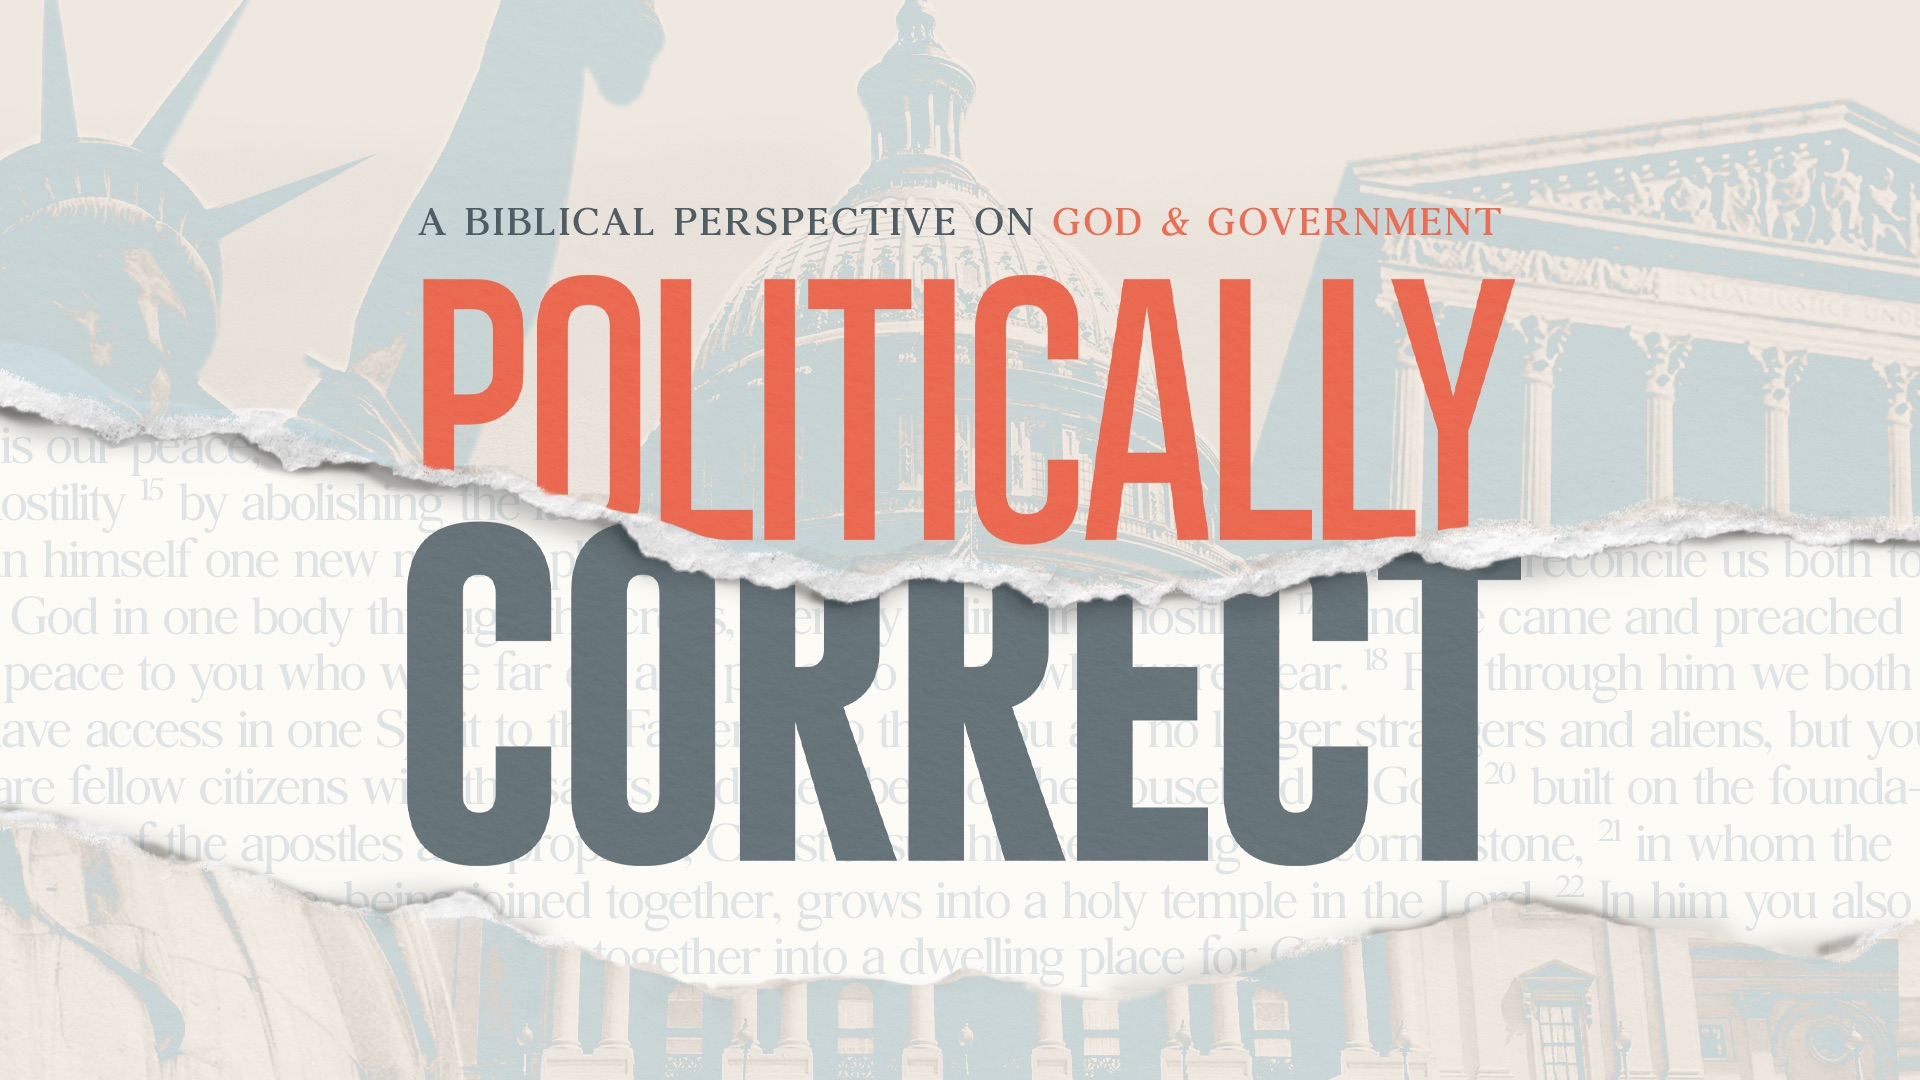 Politically Correct: Prayer, Fasting, and Communion